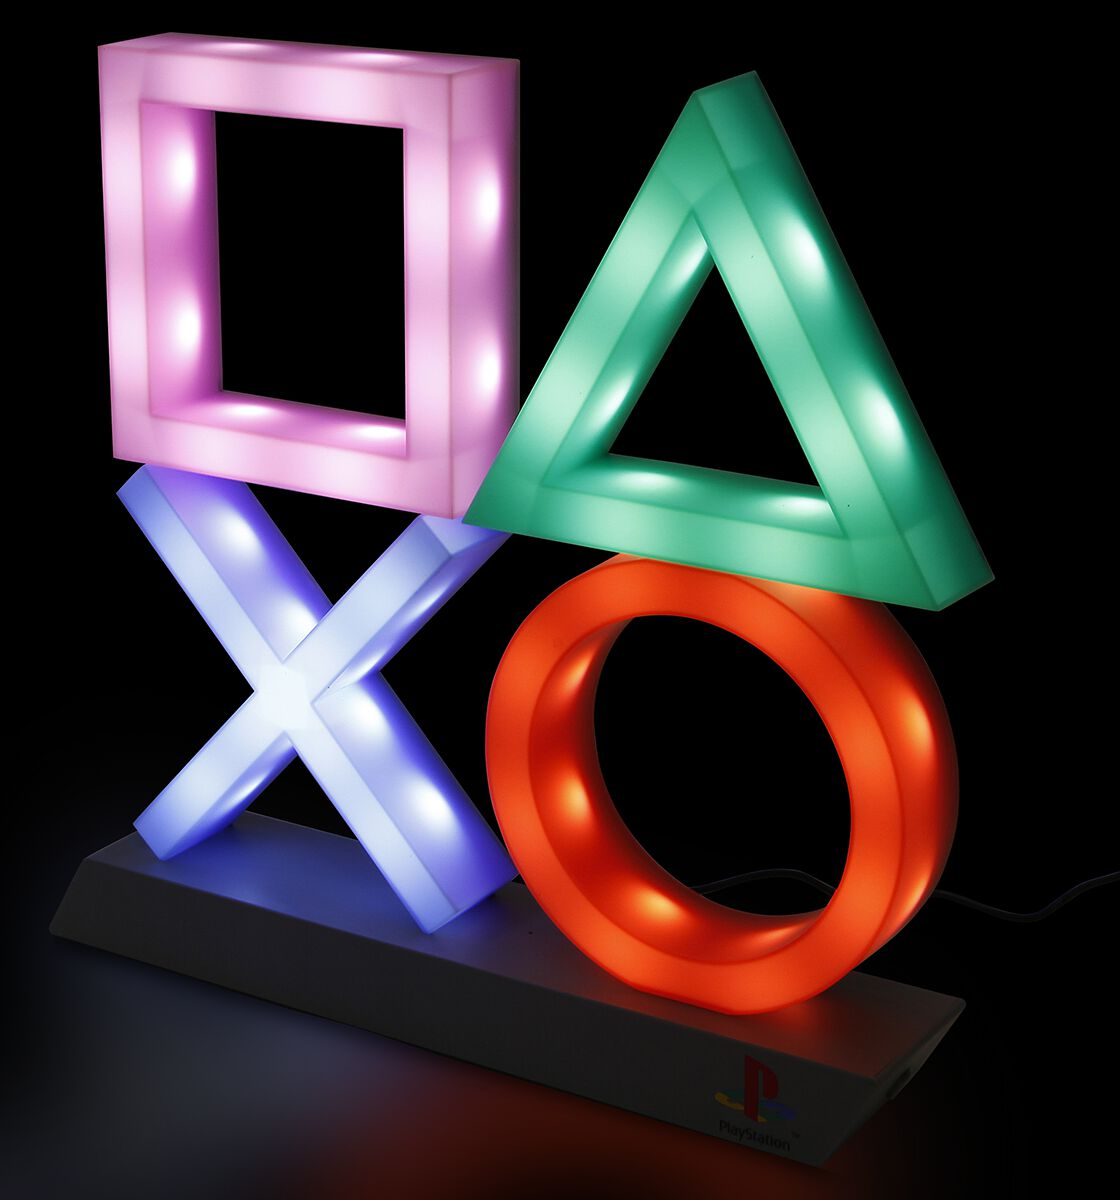 Playstation Playstation Icons Lampe Tischlampe multicolor PP5852PSV2